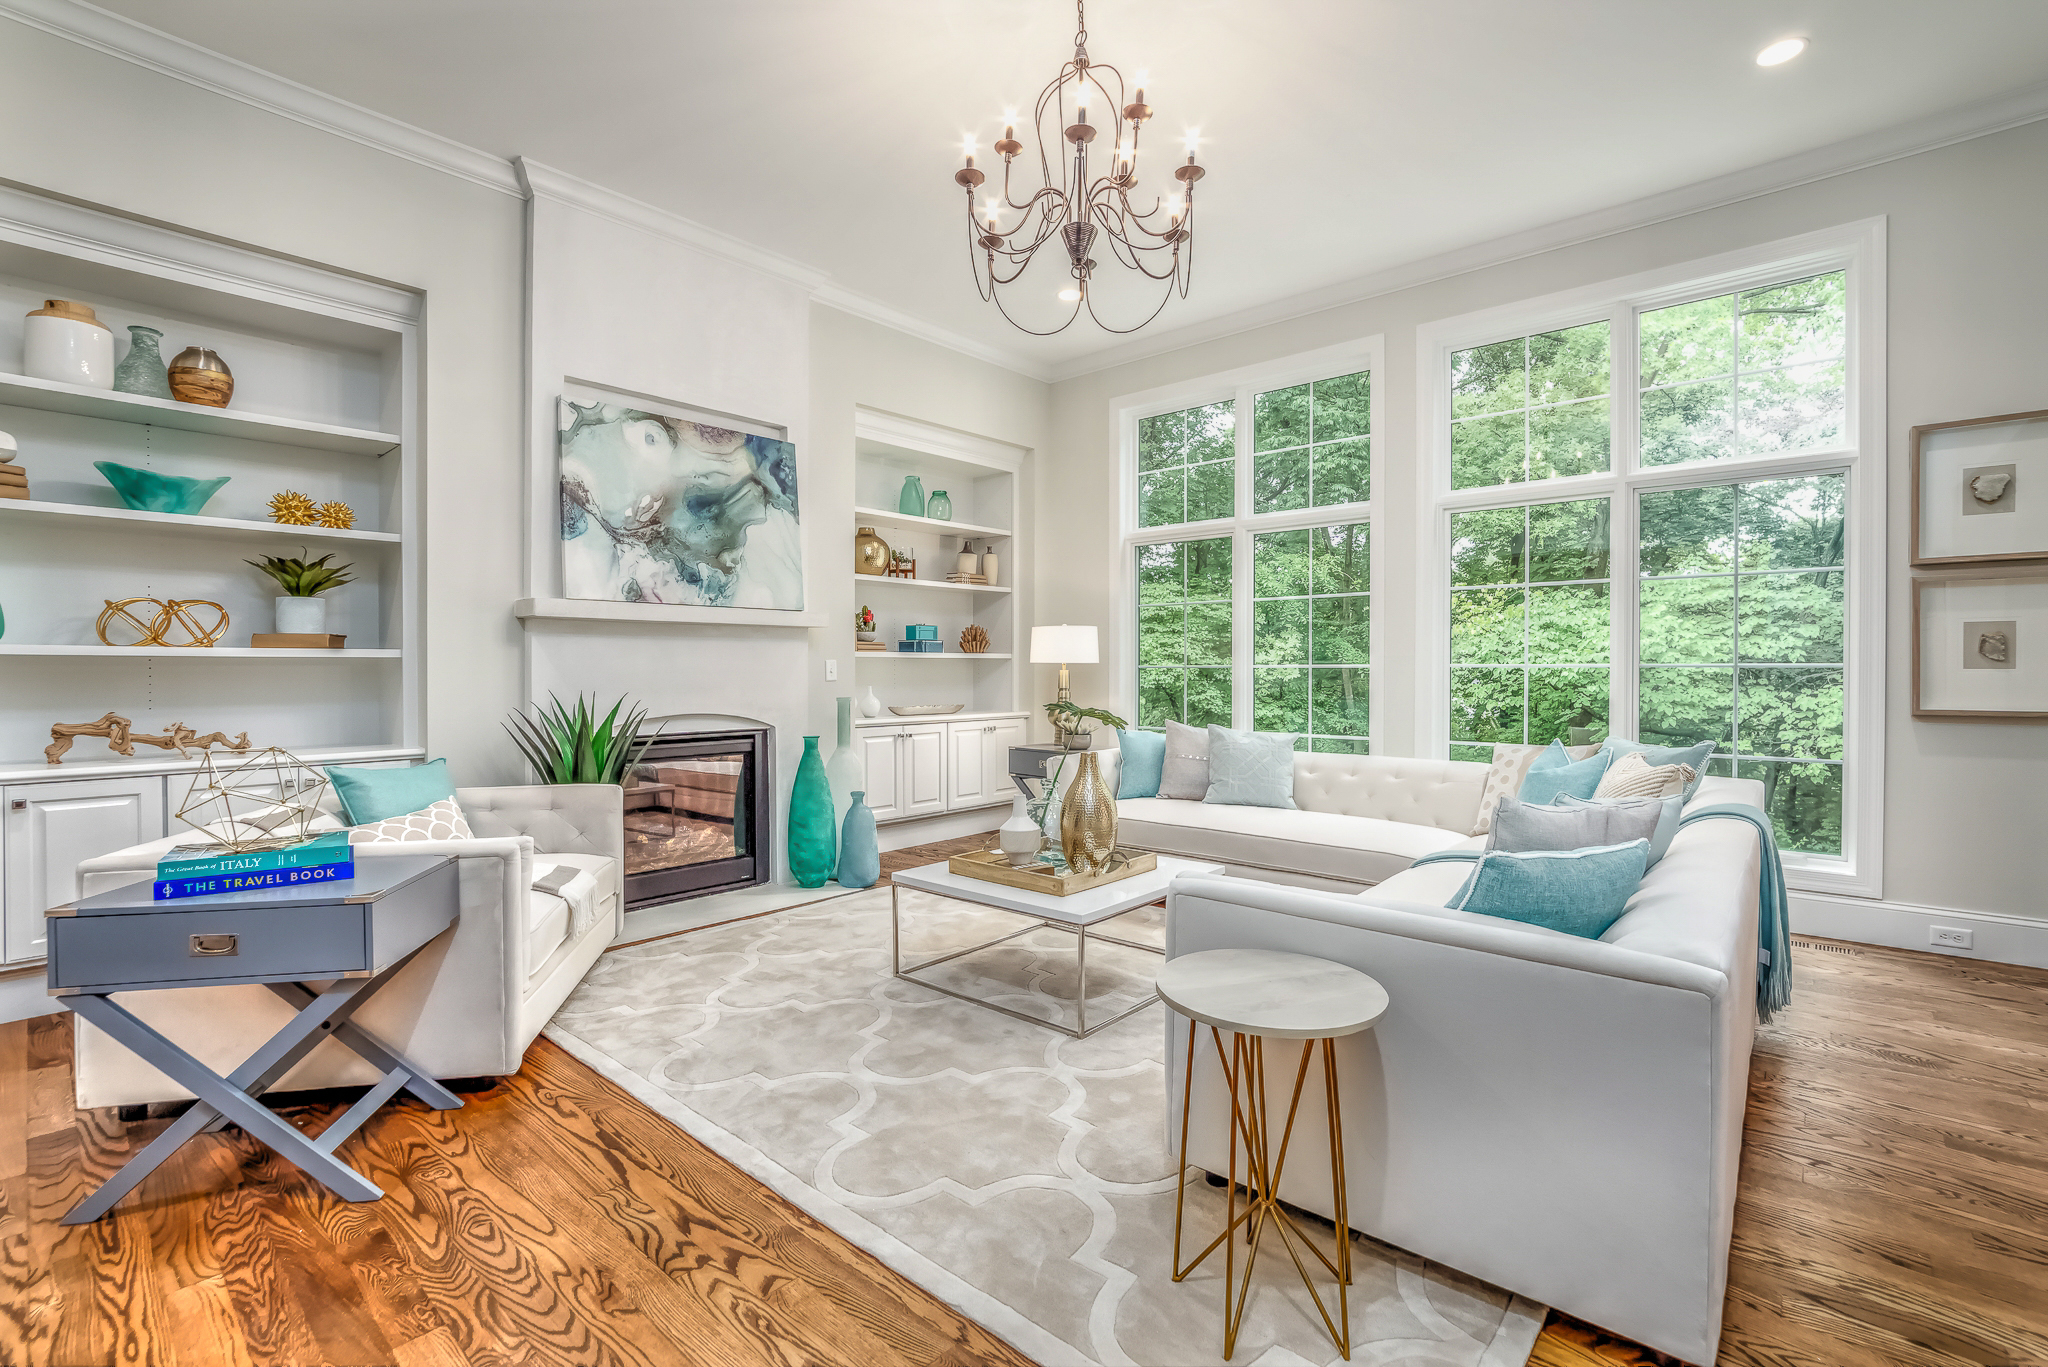 Home Staging Expert Christine Rae Publishes New Article Offering ...